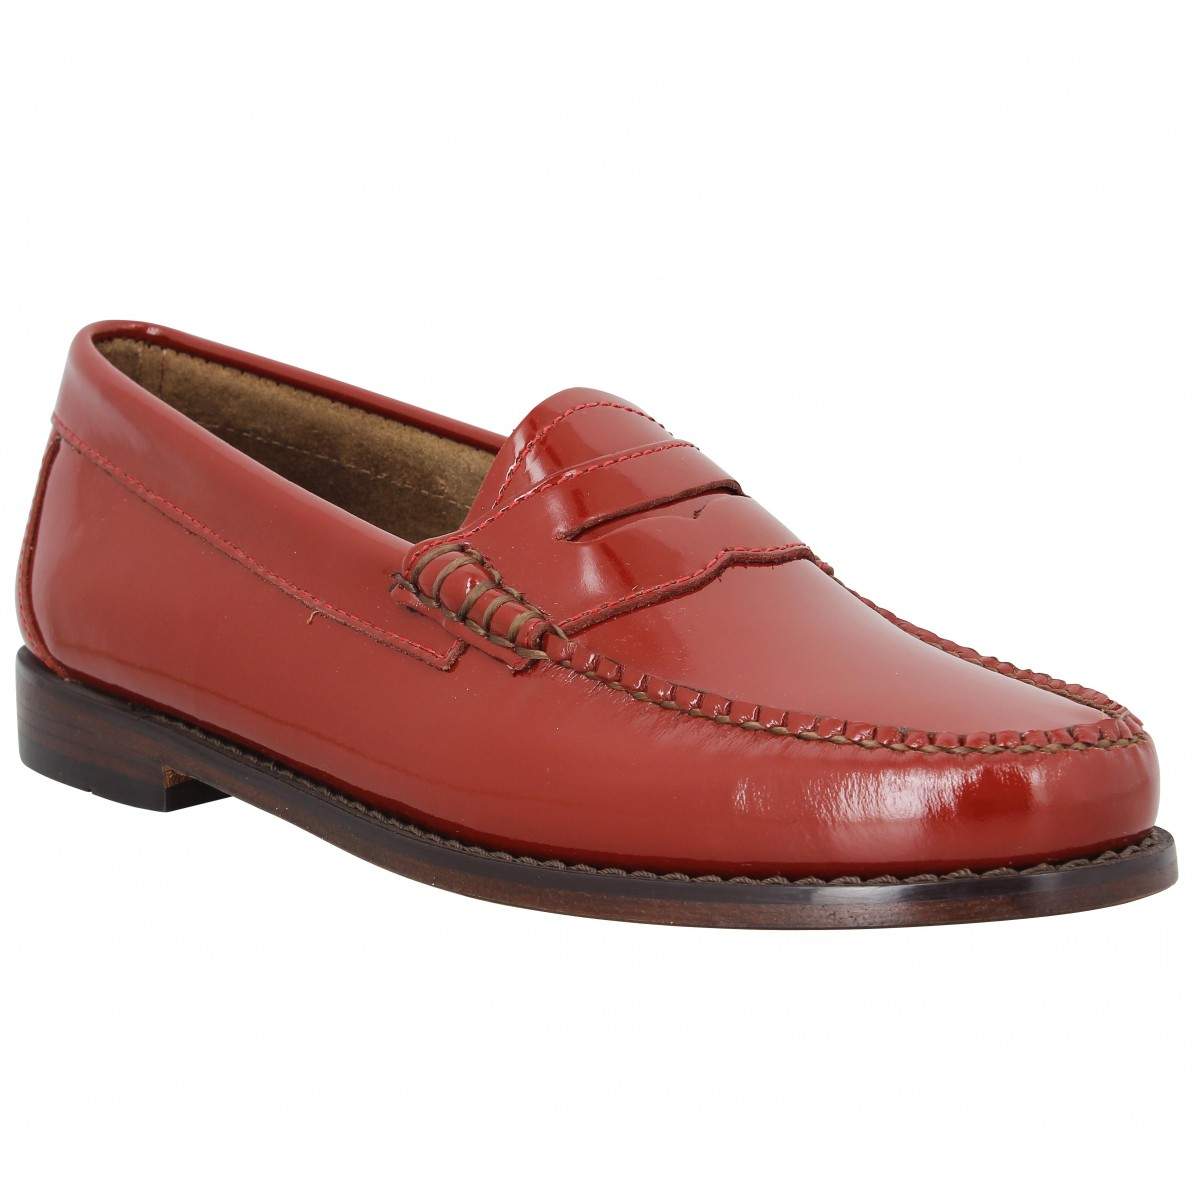 Mocassins GH BASS & CO Weejuns Penny vernis Femme Spanish Red